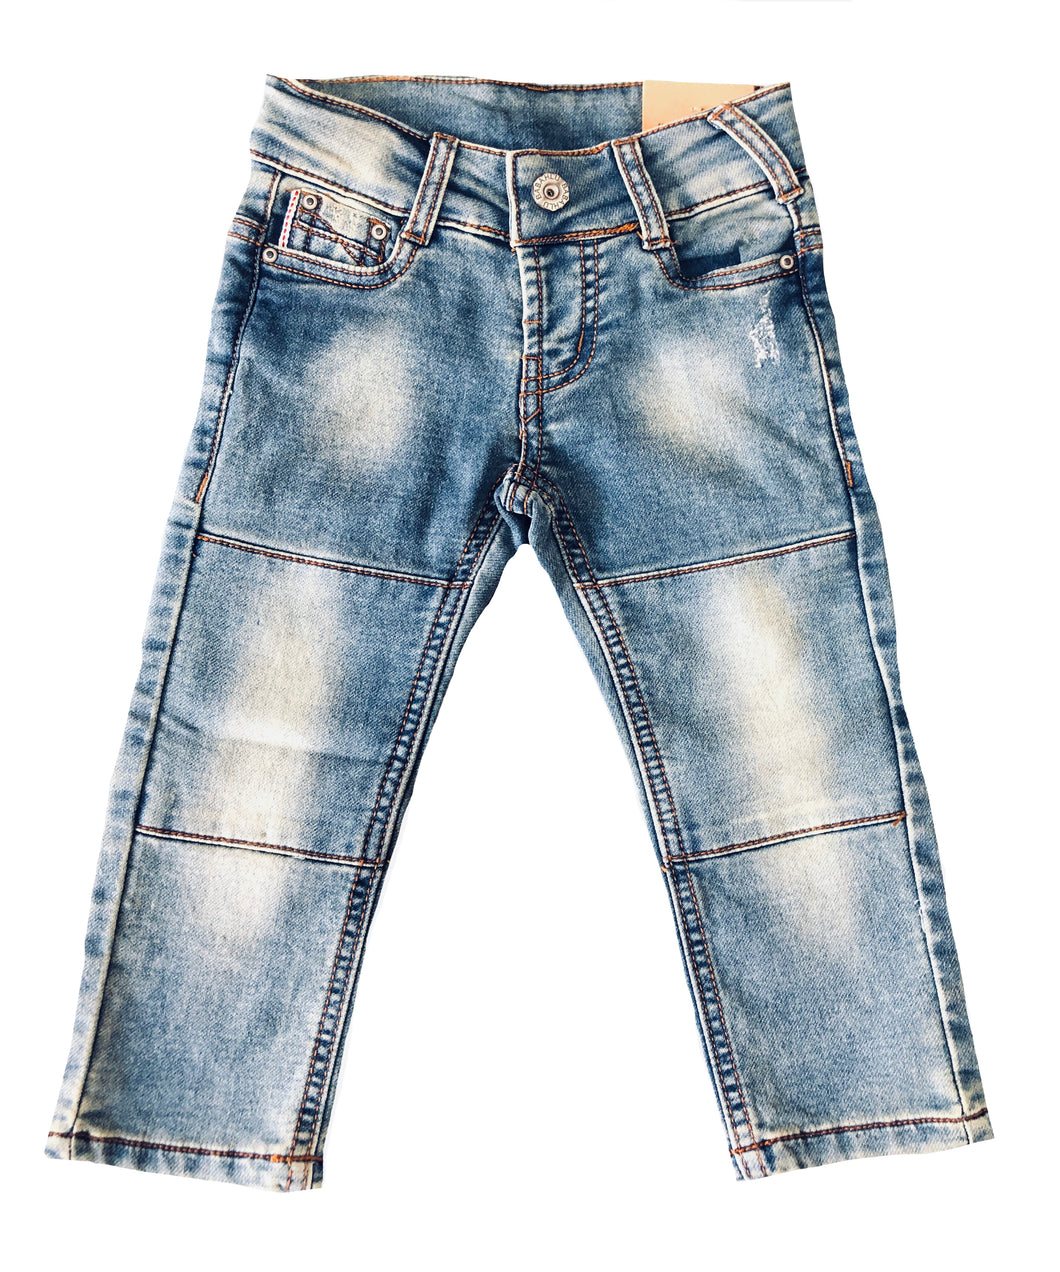 Harlow Blue Distressed Slim Fit Jeans